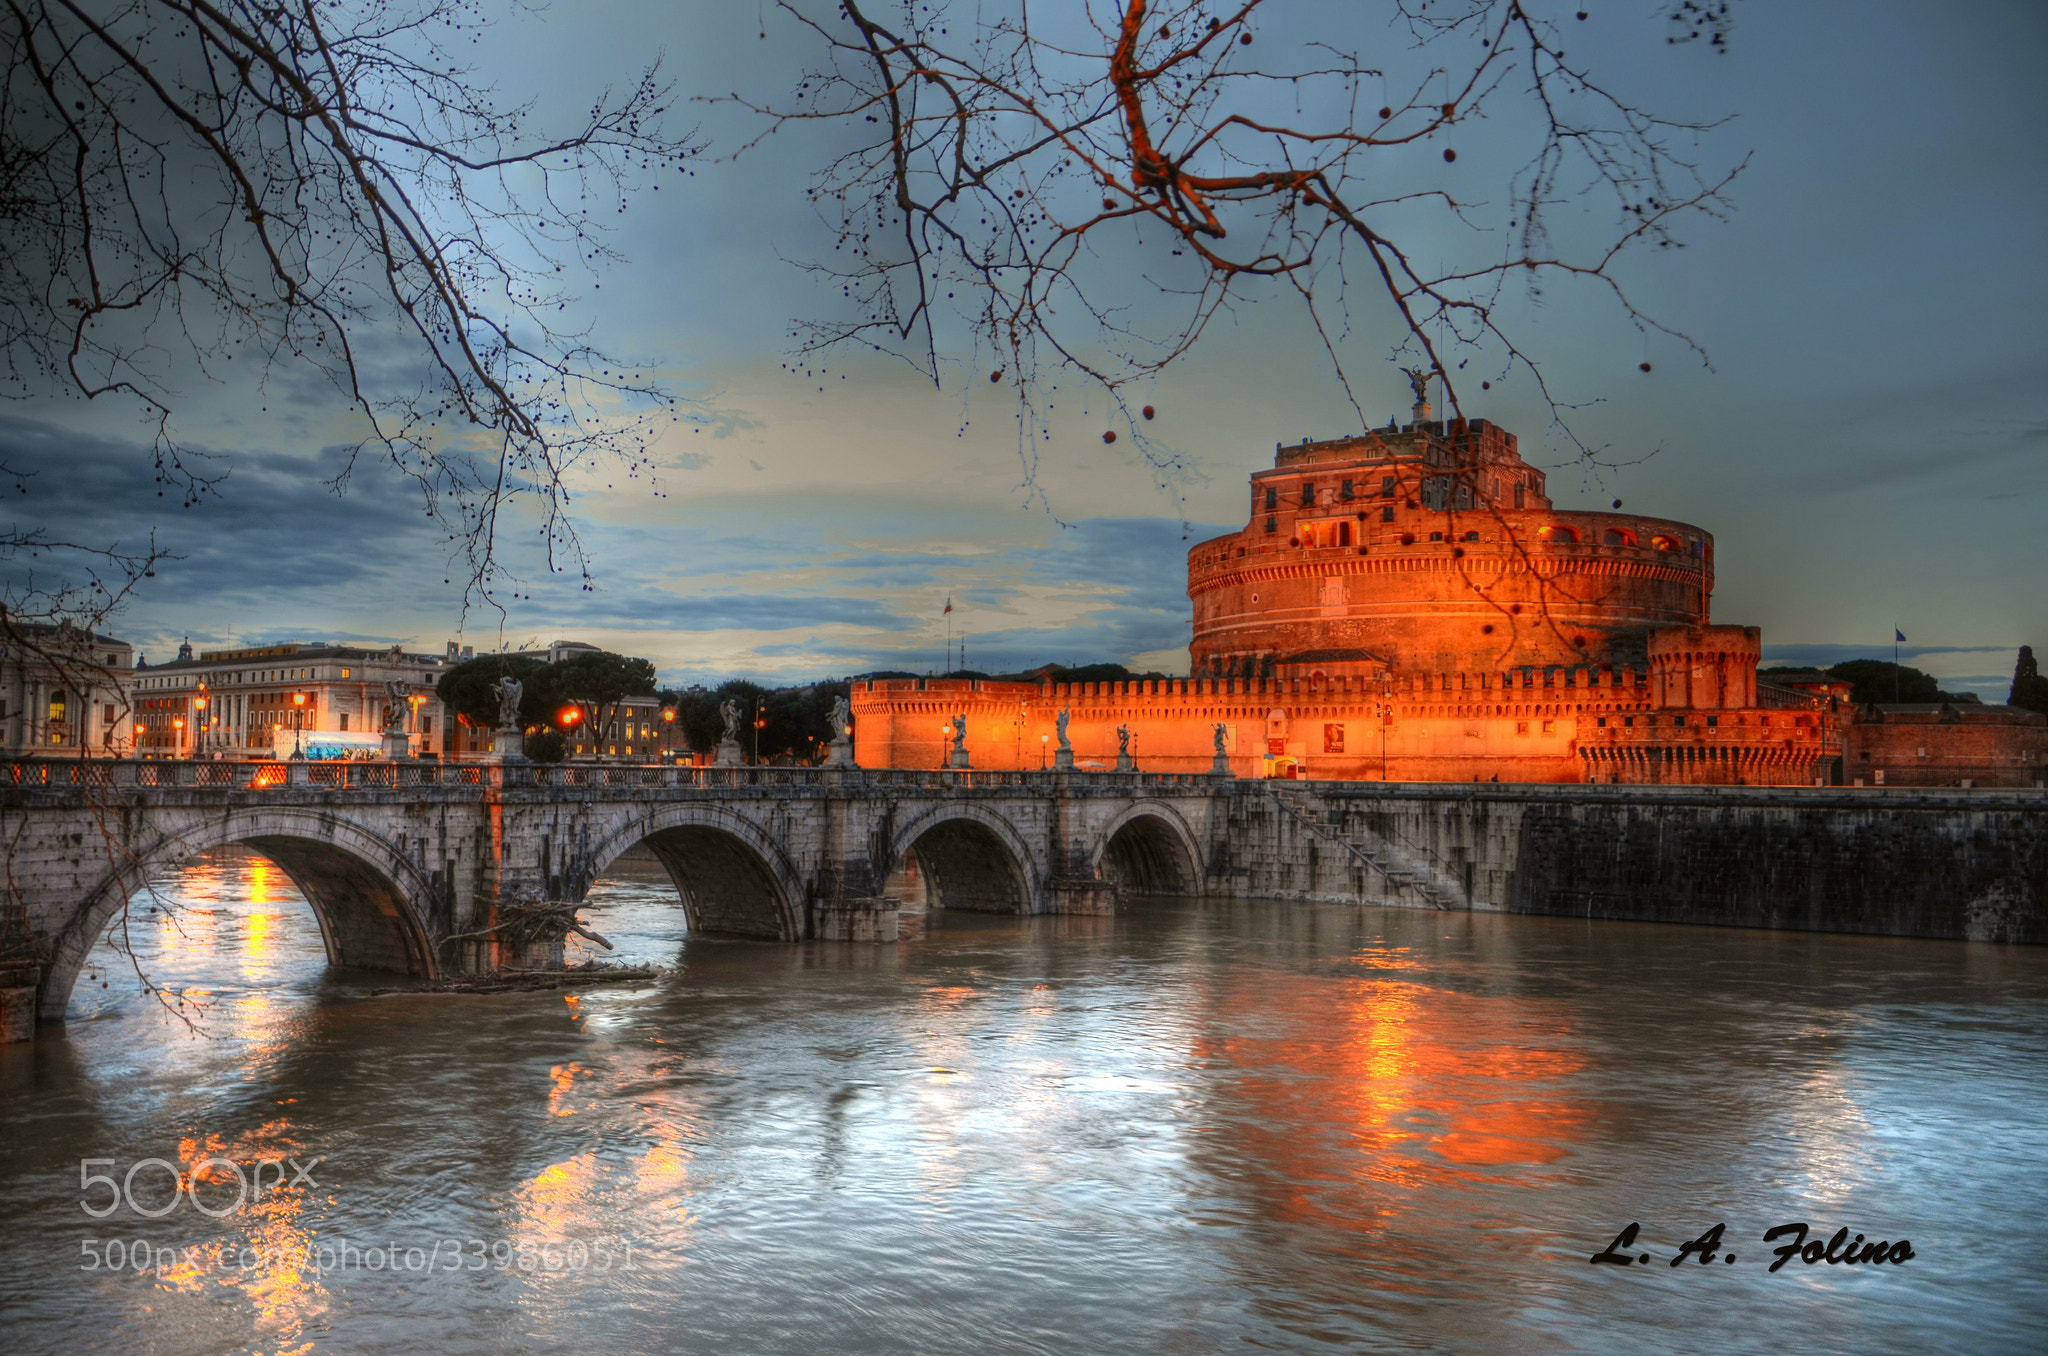 Photograph Castel S. Angelo, Roma by Luca A. Folino on 500px